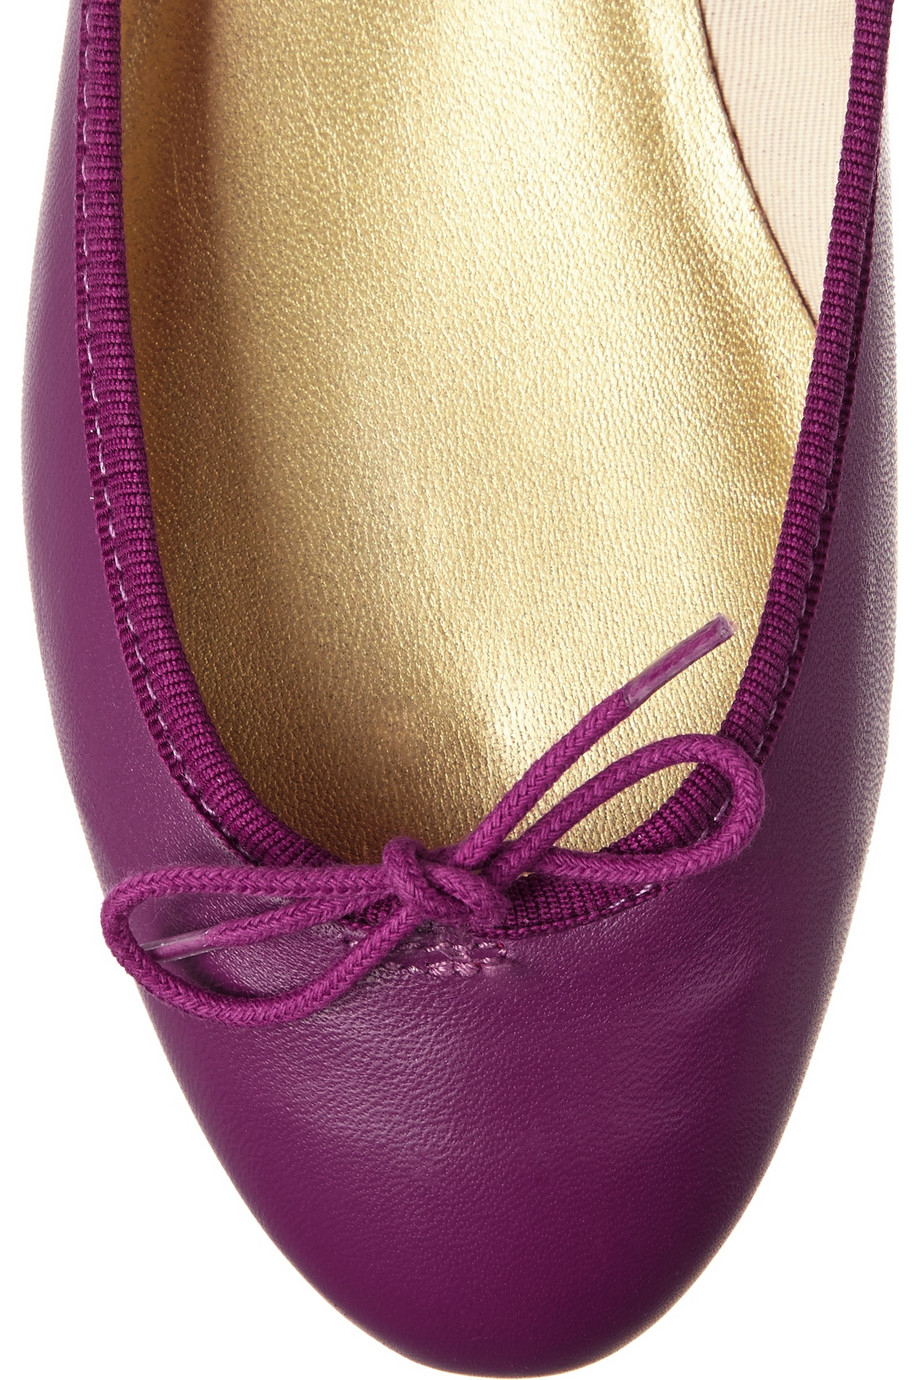 8775ae8bdb476 French Sole India Leather Ballet Flats in Purple - Lyst